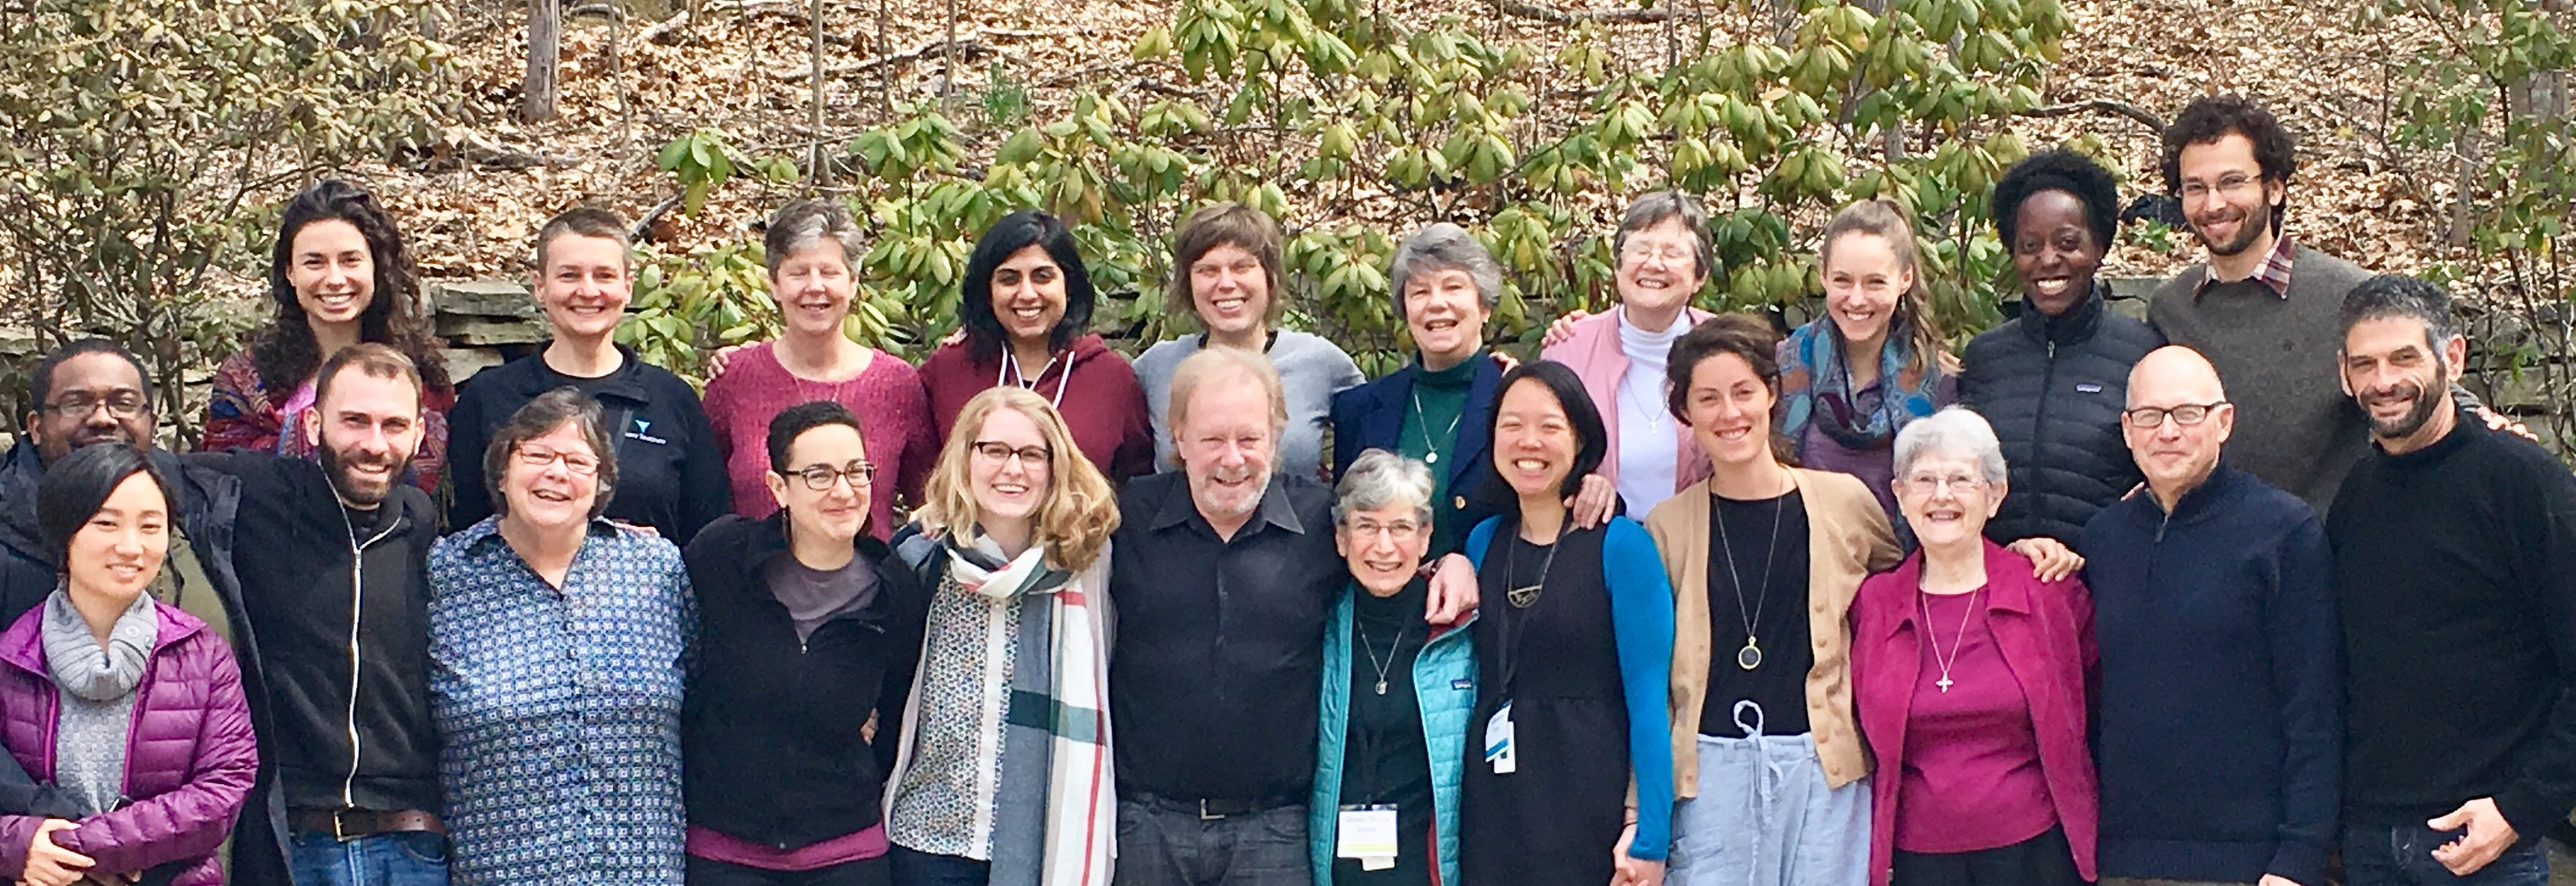 Nuns & Nones gathering in April 2018 Fetzer Center, Kalamazoo Michigan Millennials and Sisters